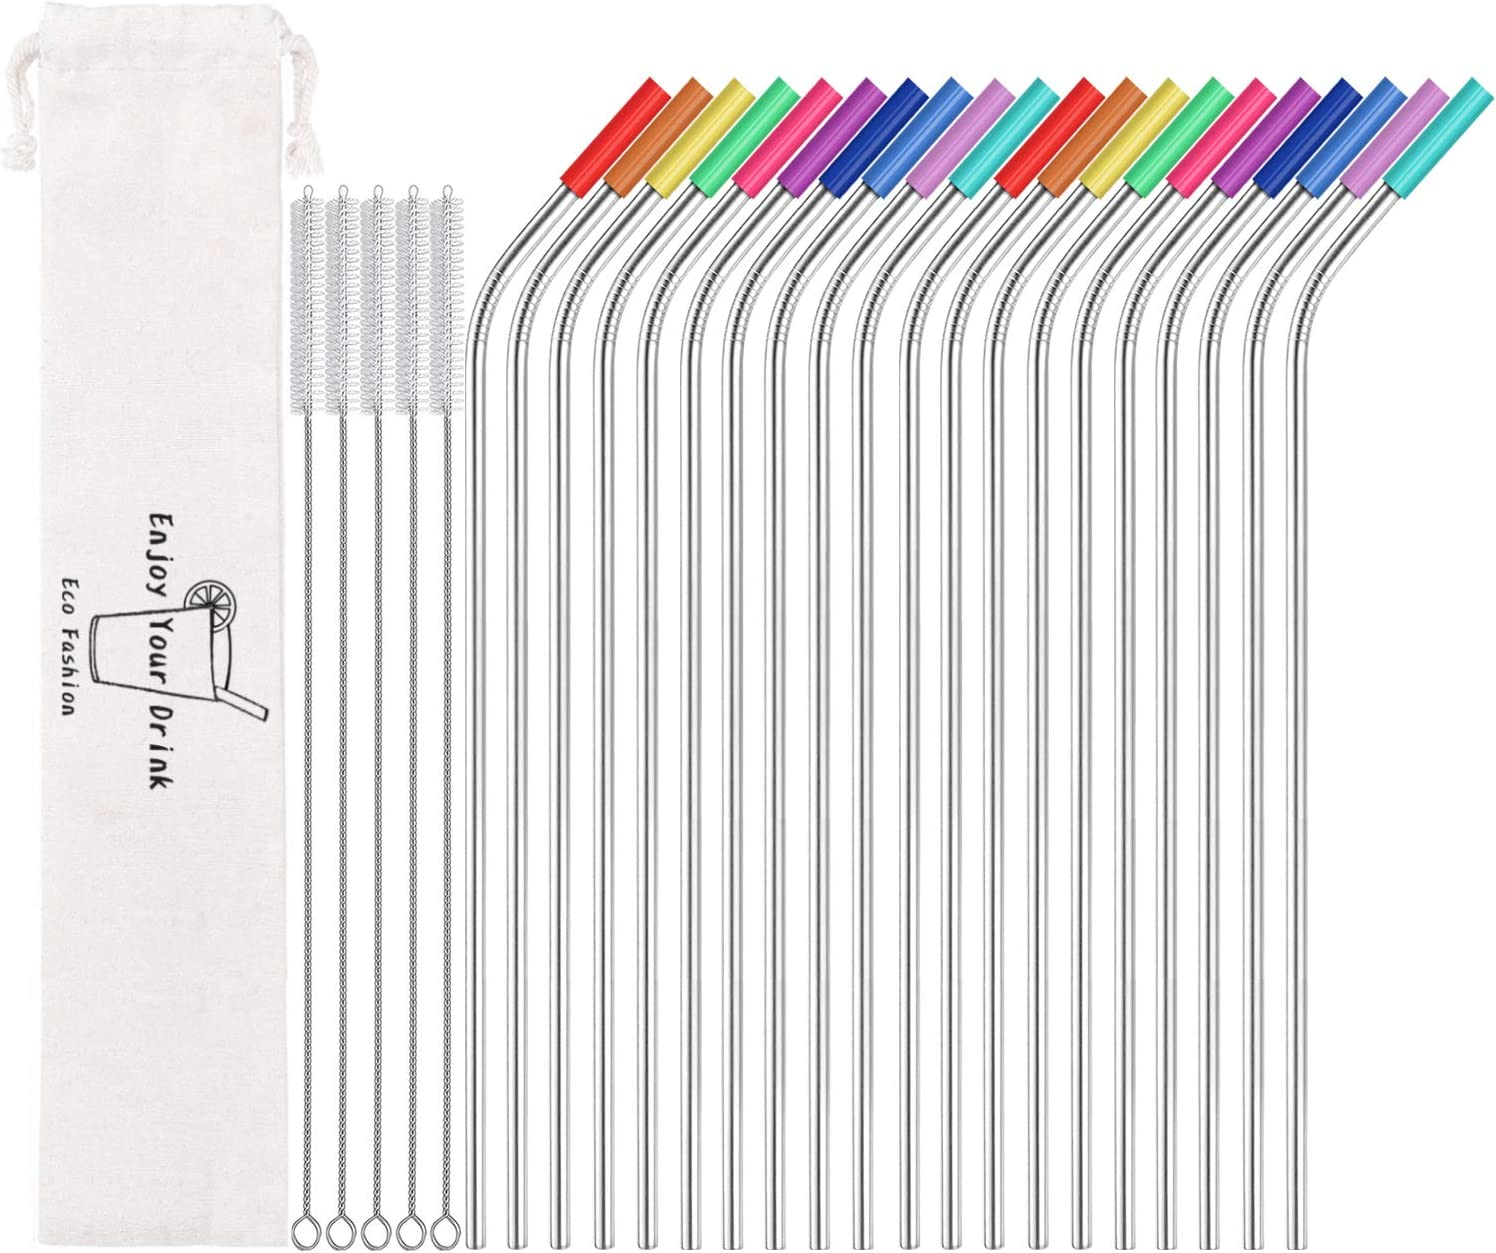 Witspace Long Bendy Mental Ecofriendly Straws Colored Stainless Steel Drinking Straws For 20 Oz//30 Oz Cups A